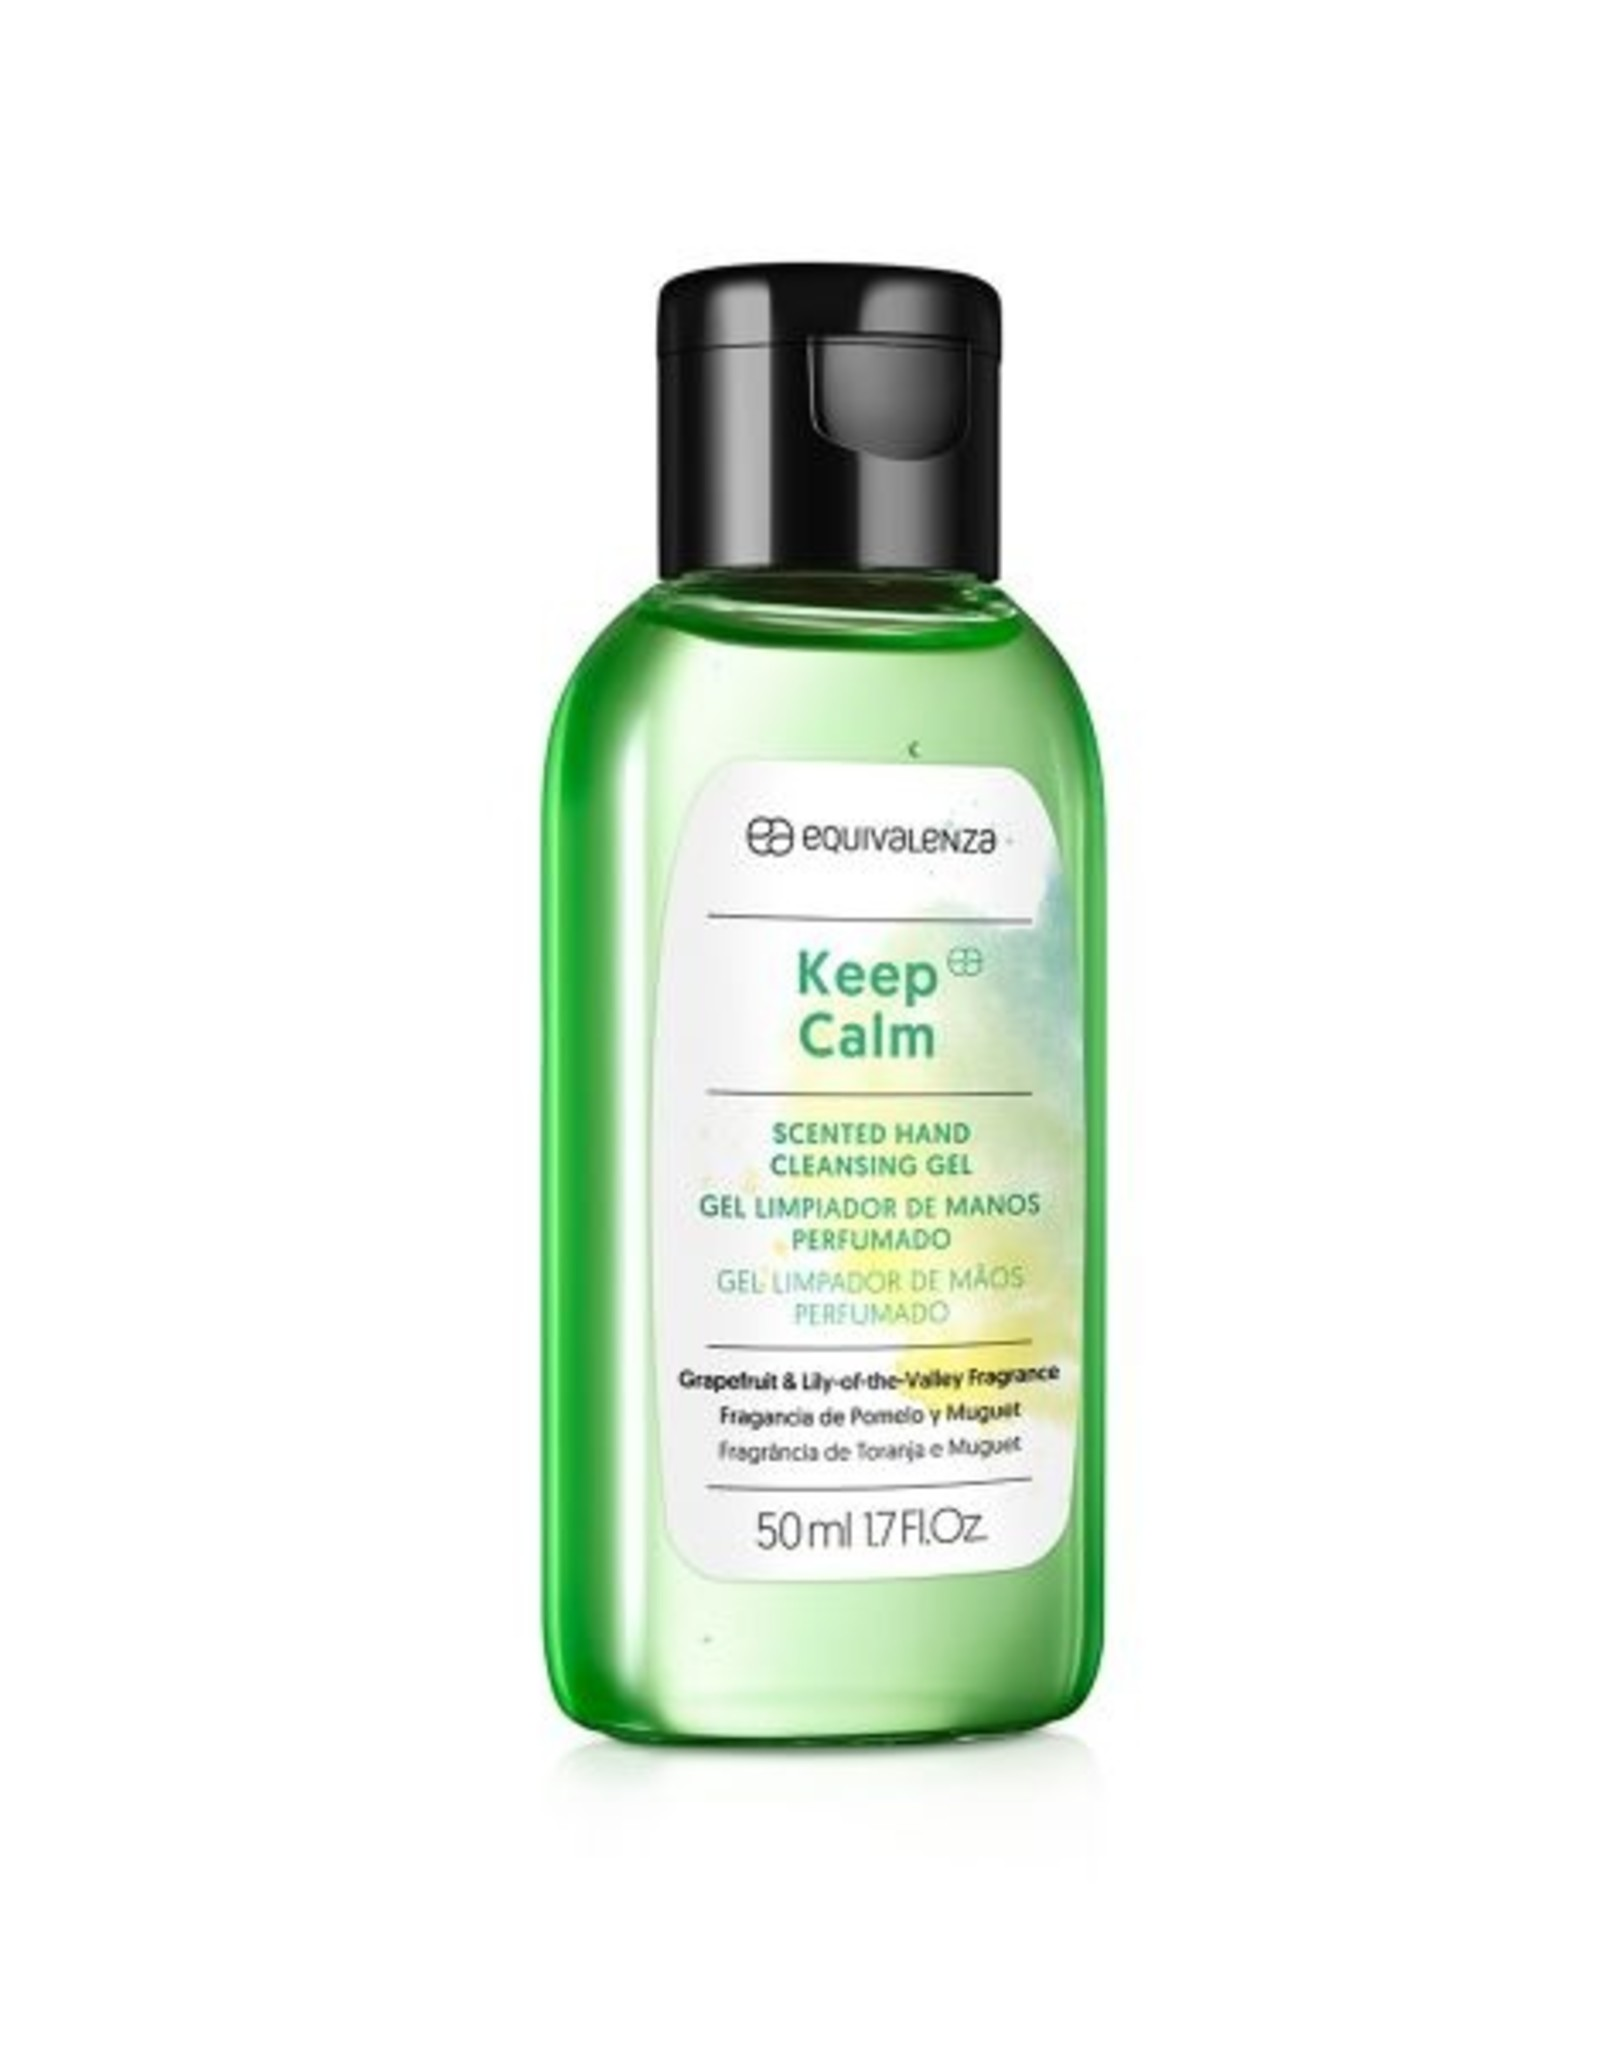 Equivalenza Scented Hand Cleasing Gel - Keep Calm